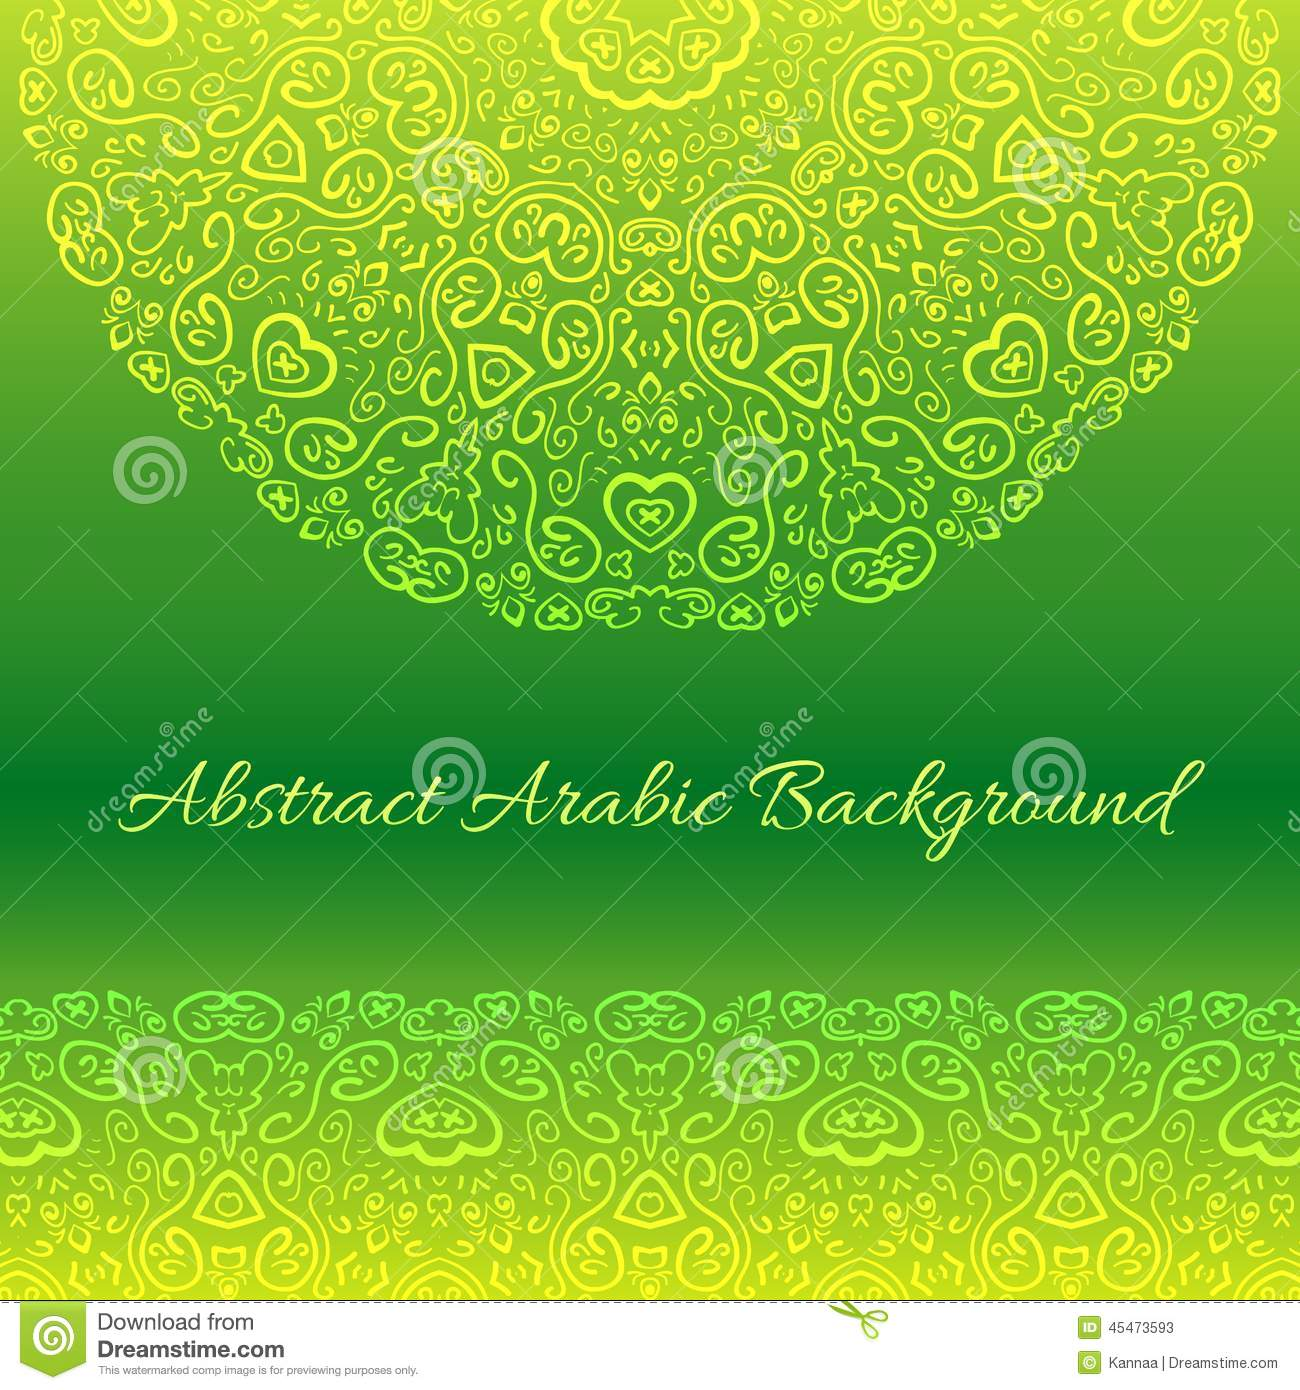 Abstract Arabic Background Vector Illustration Stock